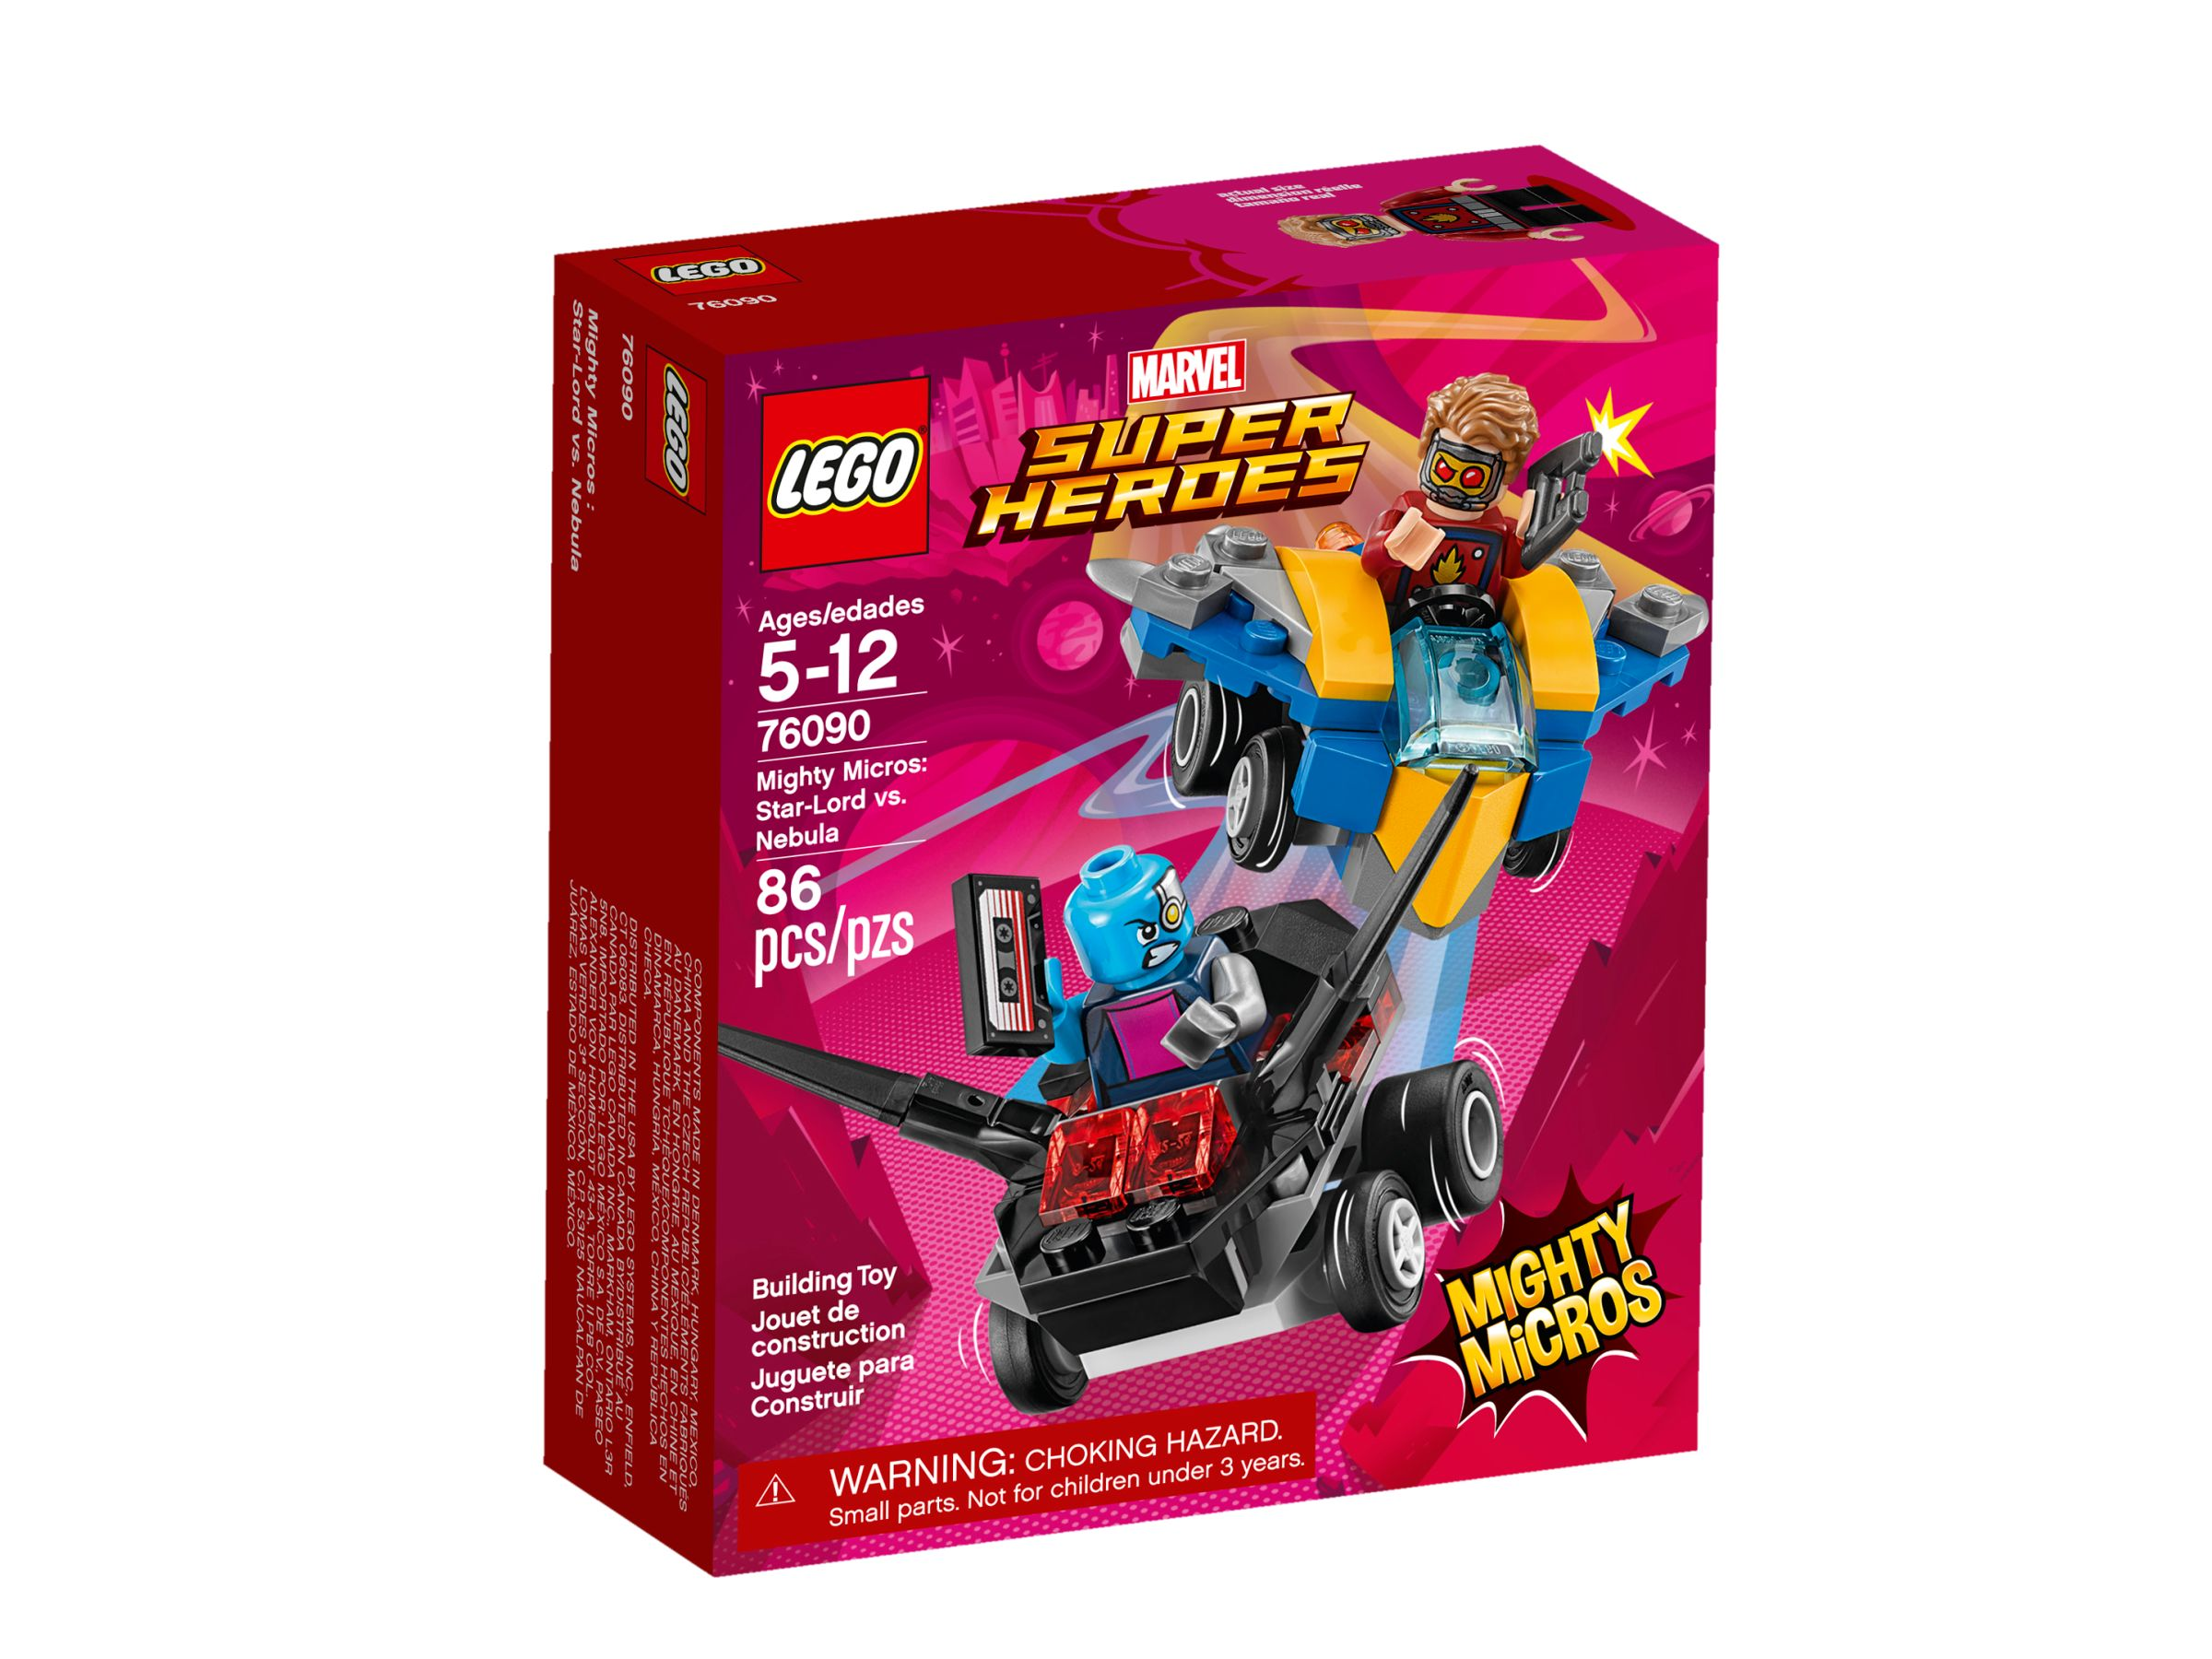 LEGO Super Heroes 76090 Mighty Micros: Star-Lord vs. Nebula LEGO_76090_alt1.jpg